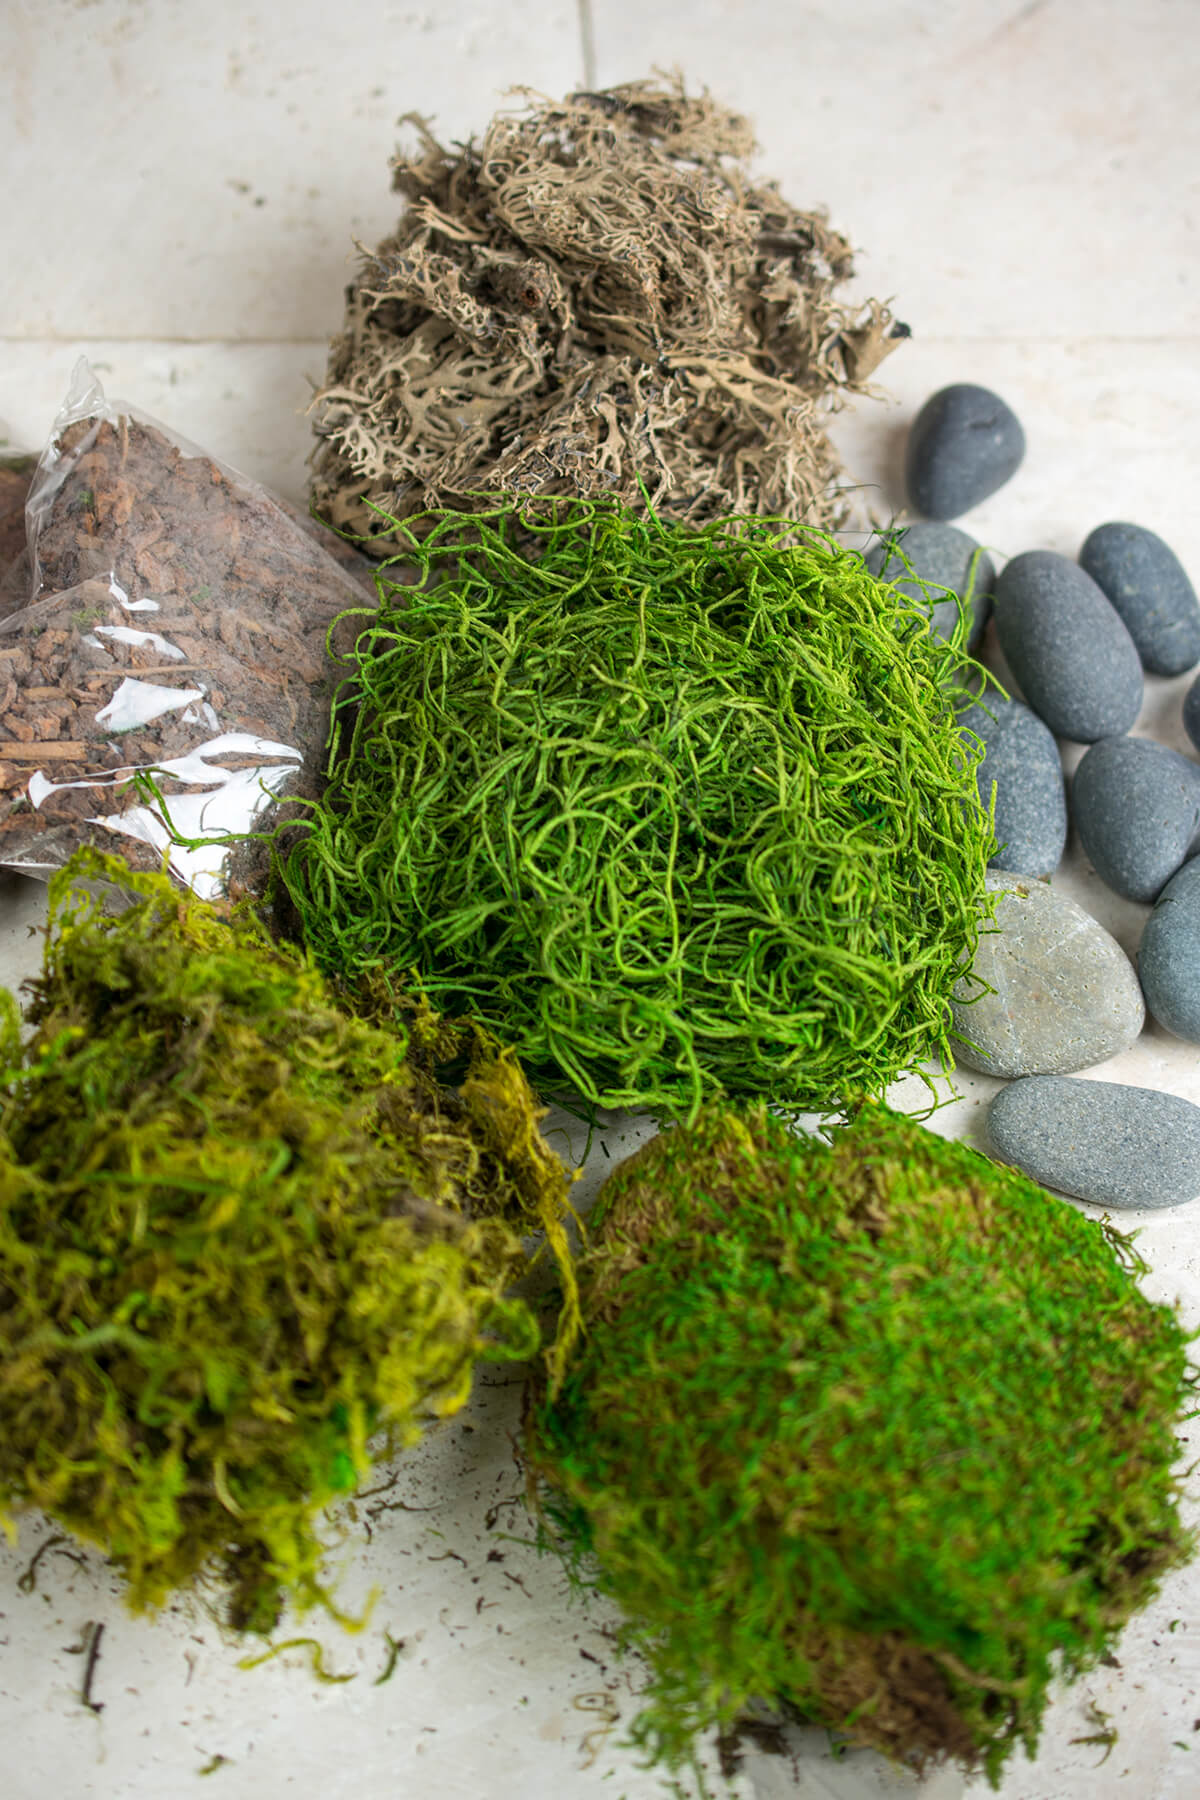 Terrarium Kit with Bark,Asst Mosses, Stones and Lichen